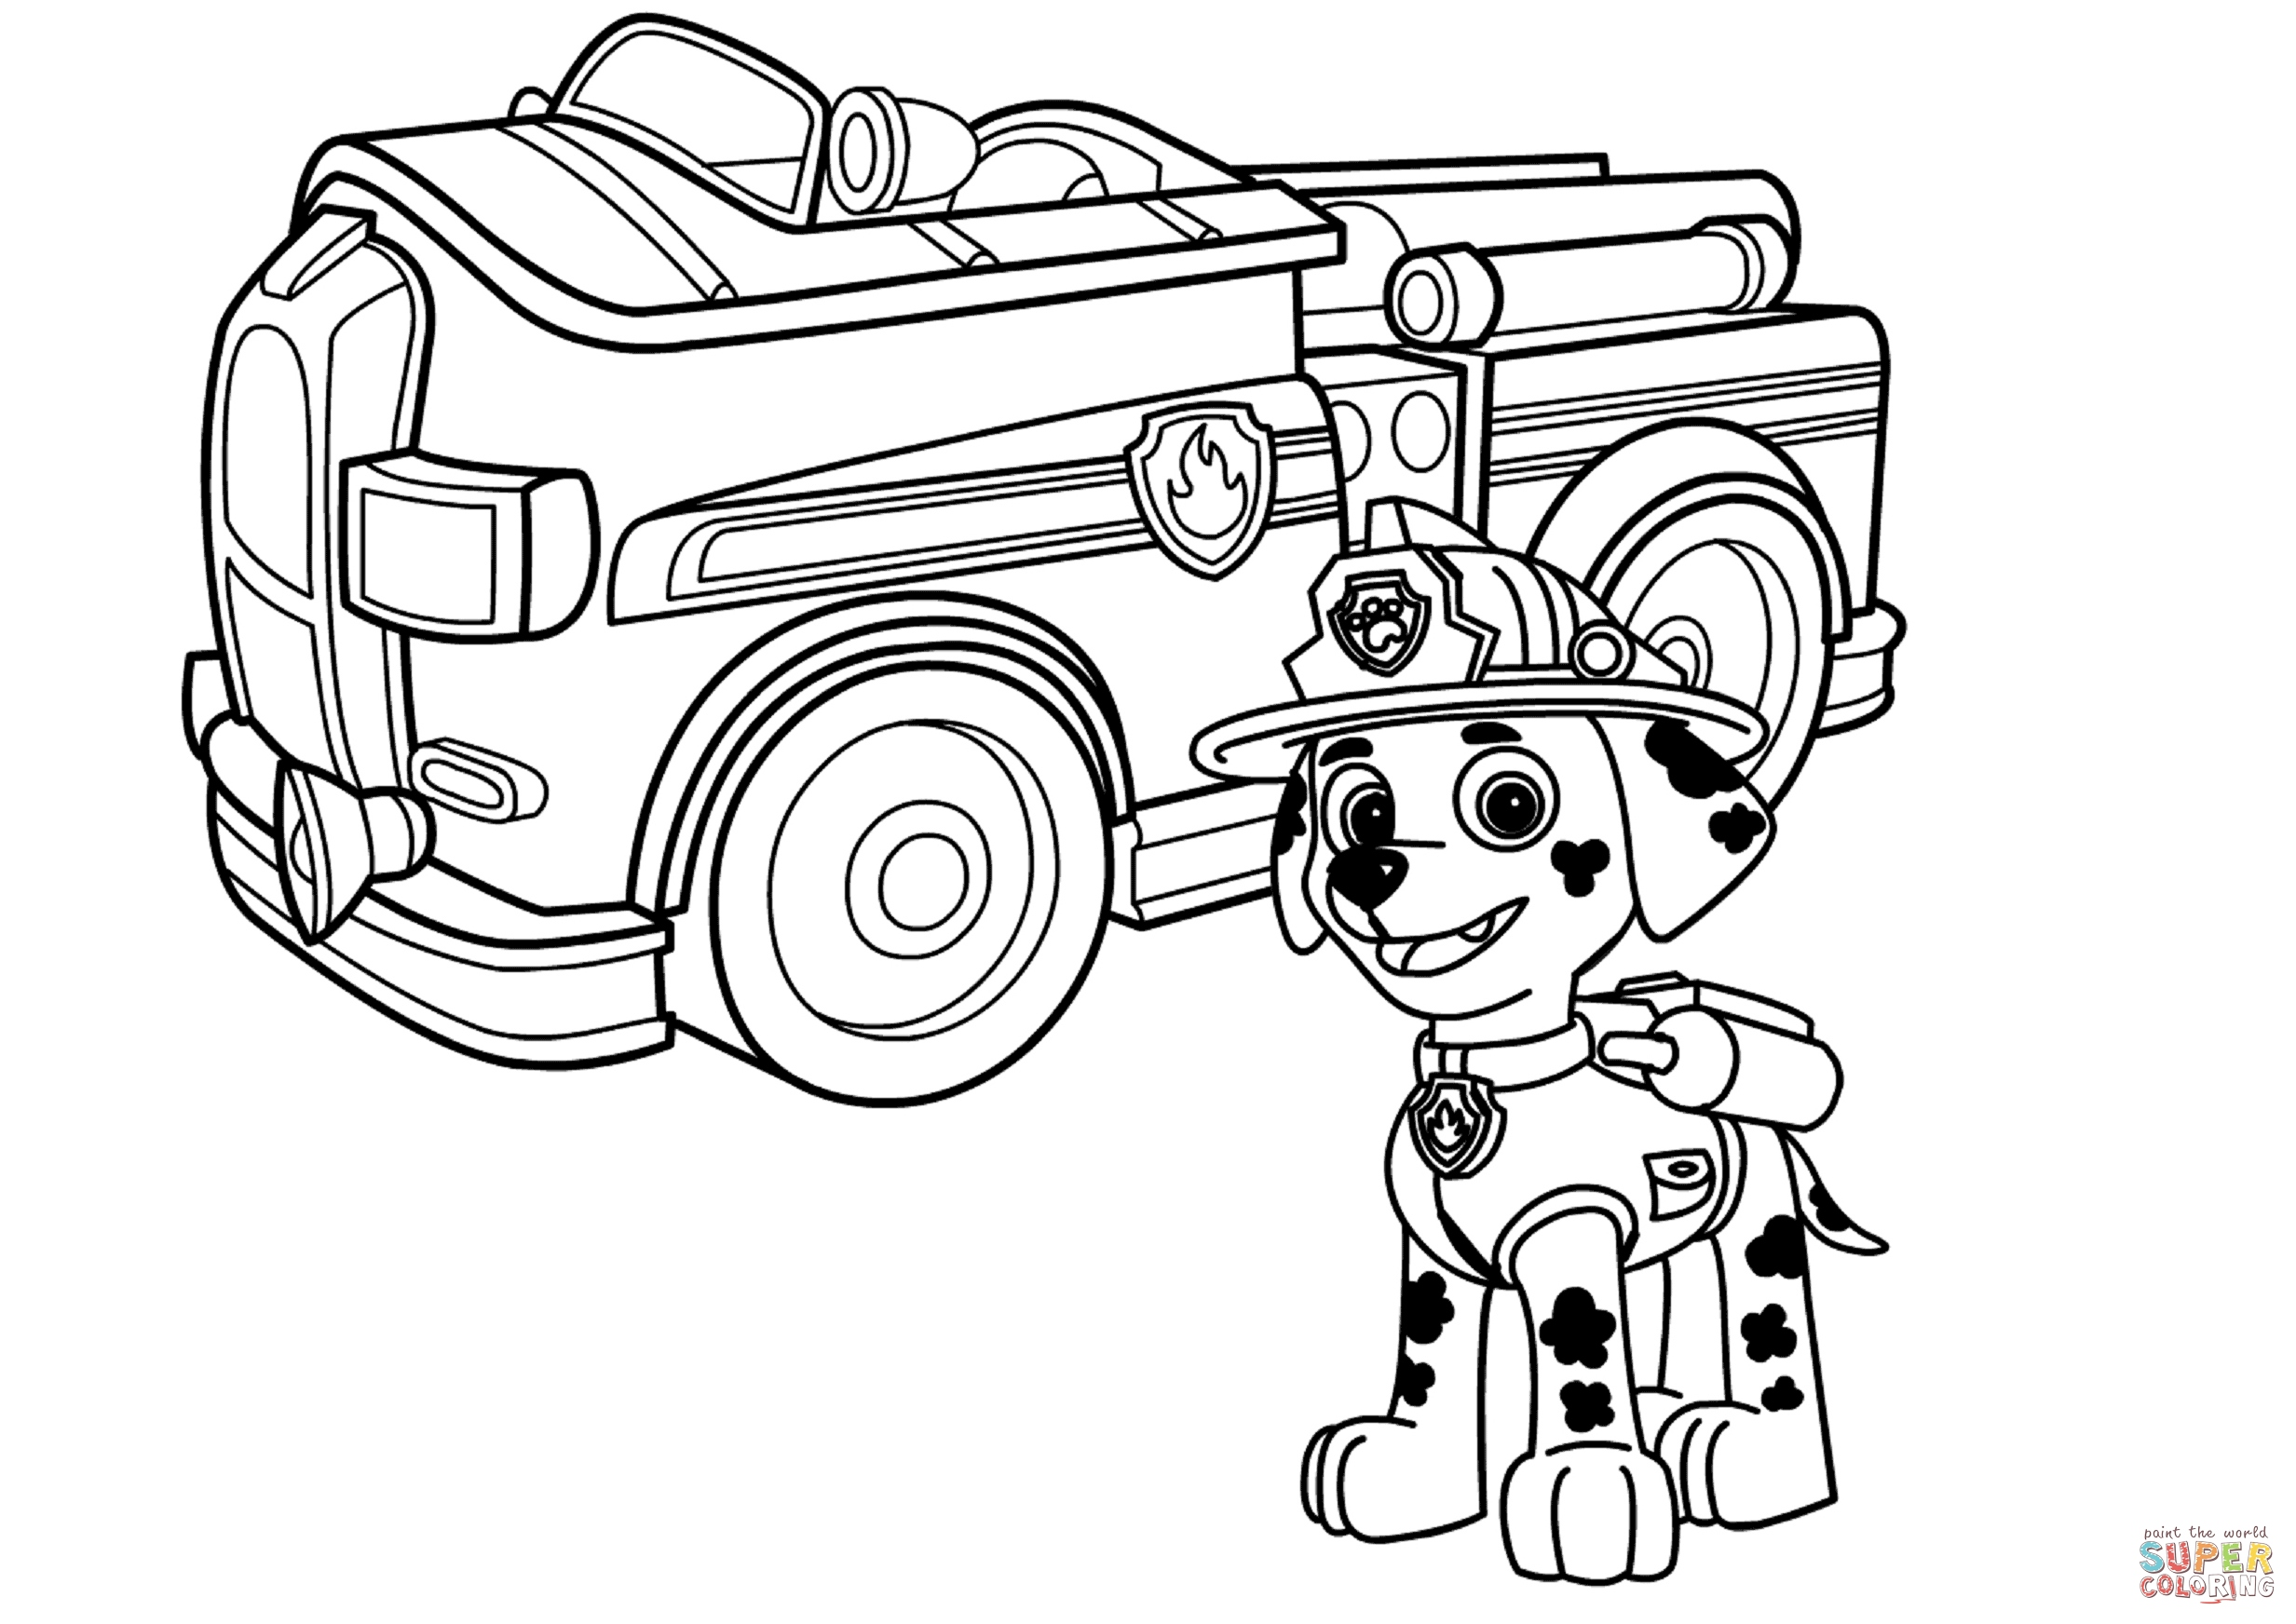 2465x1744 Fire Truck Coloring Pages Unique Fire Truck Coloring Pages Fire